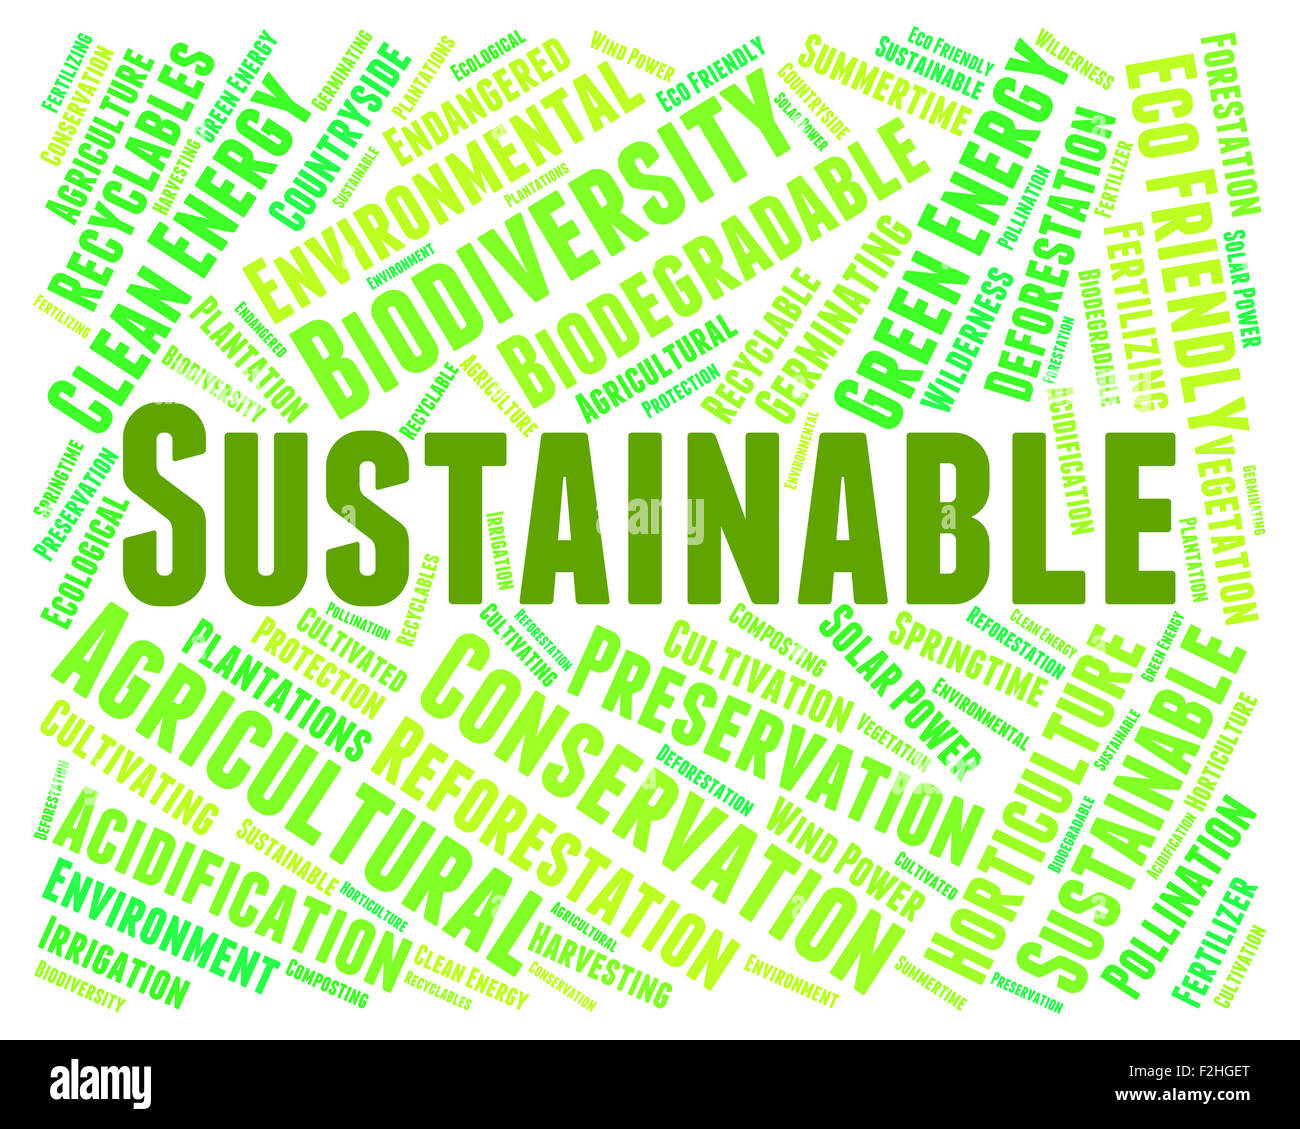 Sustainable Word Meaning Conservation Recycle And Sustaining Stock Sustainable Word Meaning Conservation Recycle And Sustaining FHGET Stock Photo Sustainable Word Meaning Conservation Recycle And Sustaining